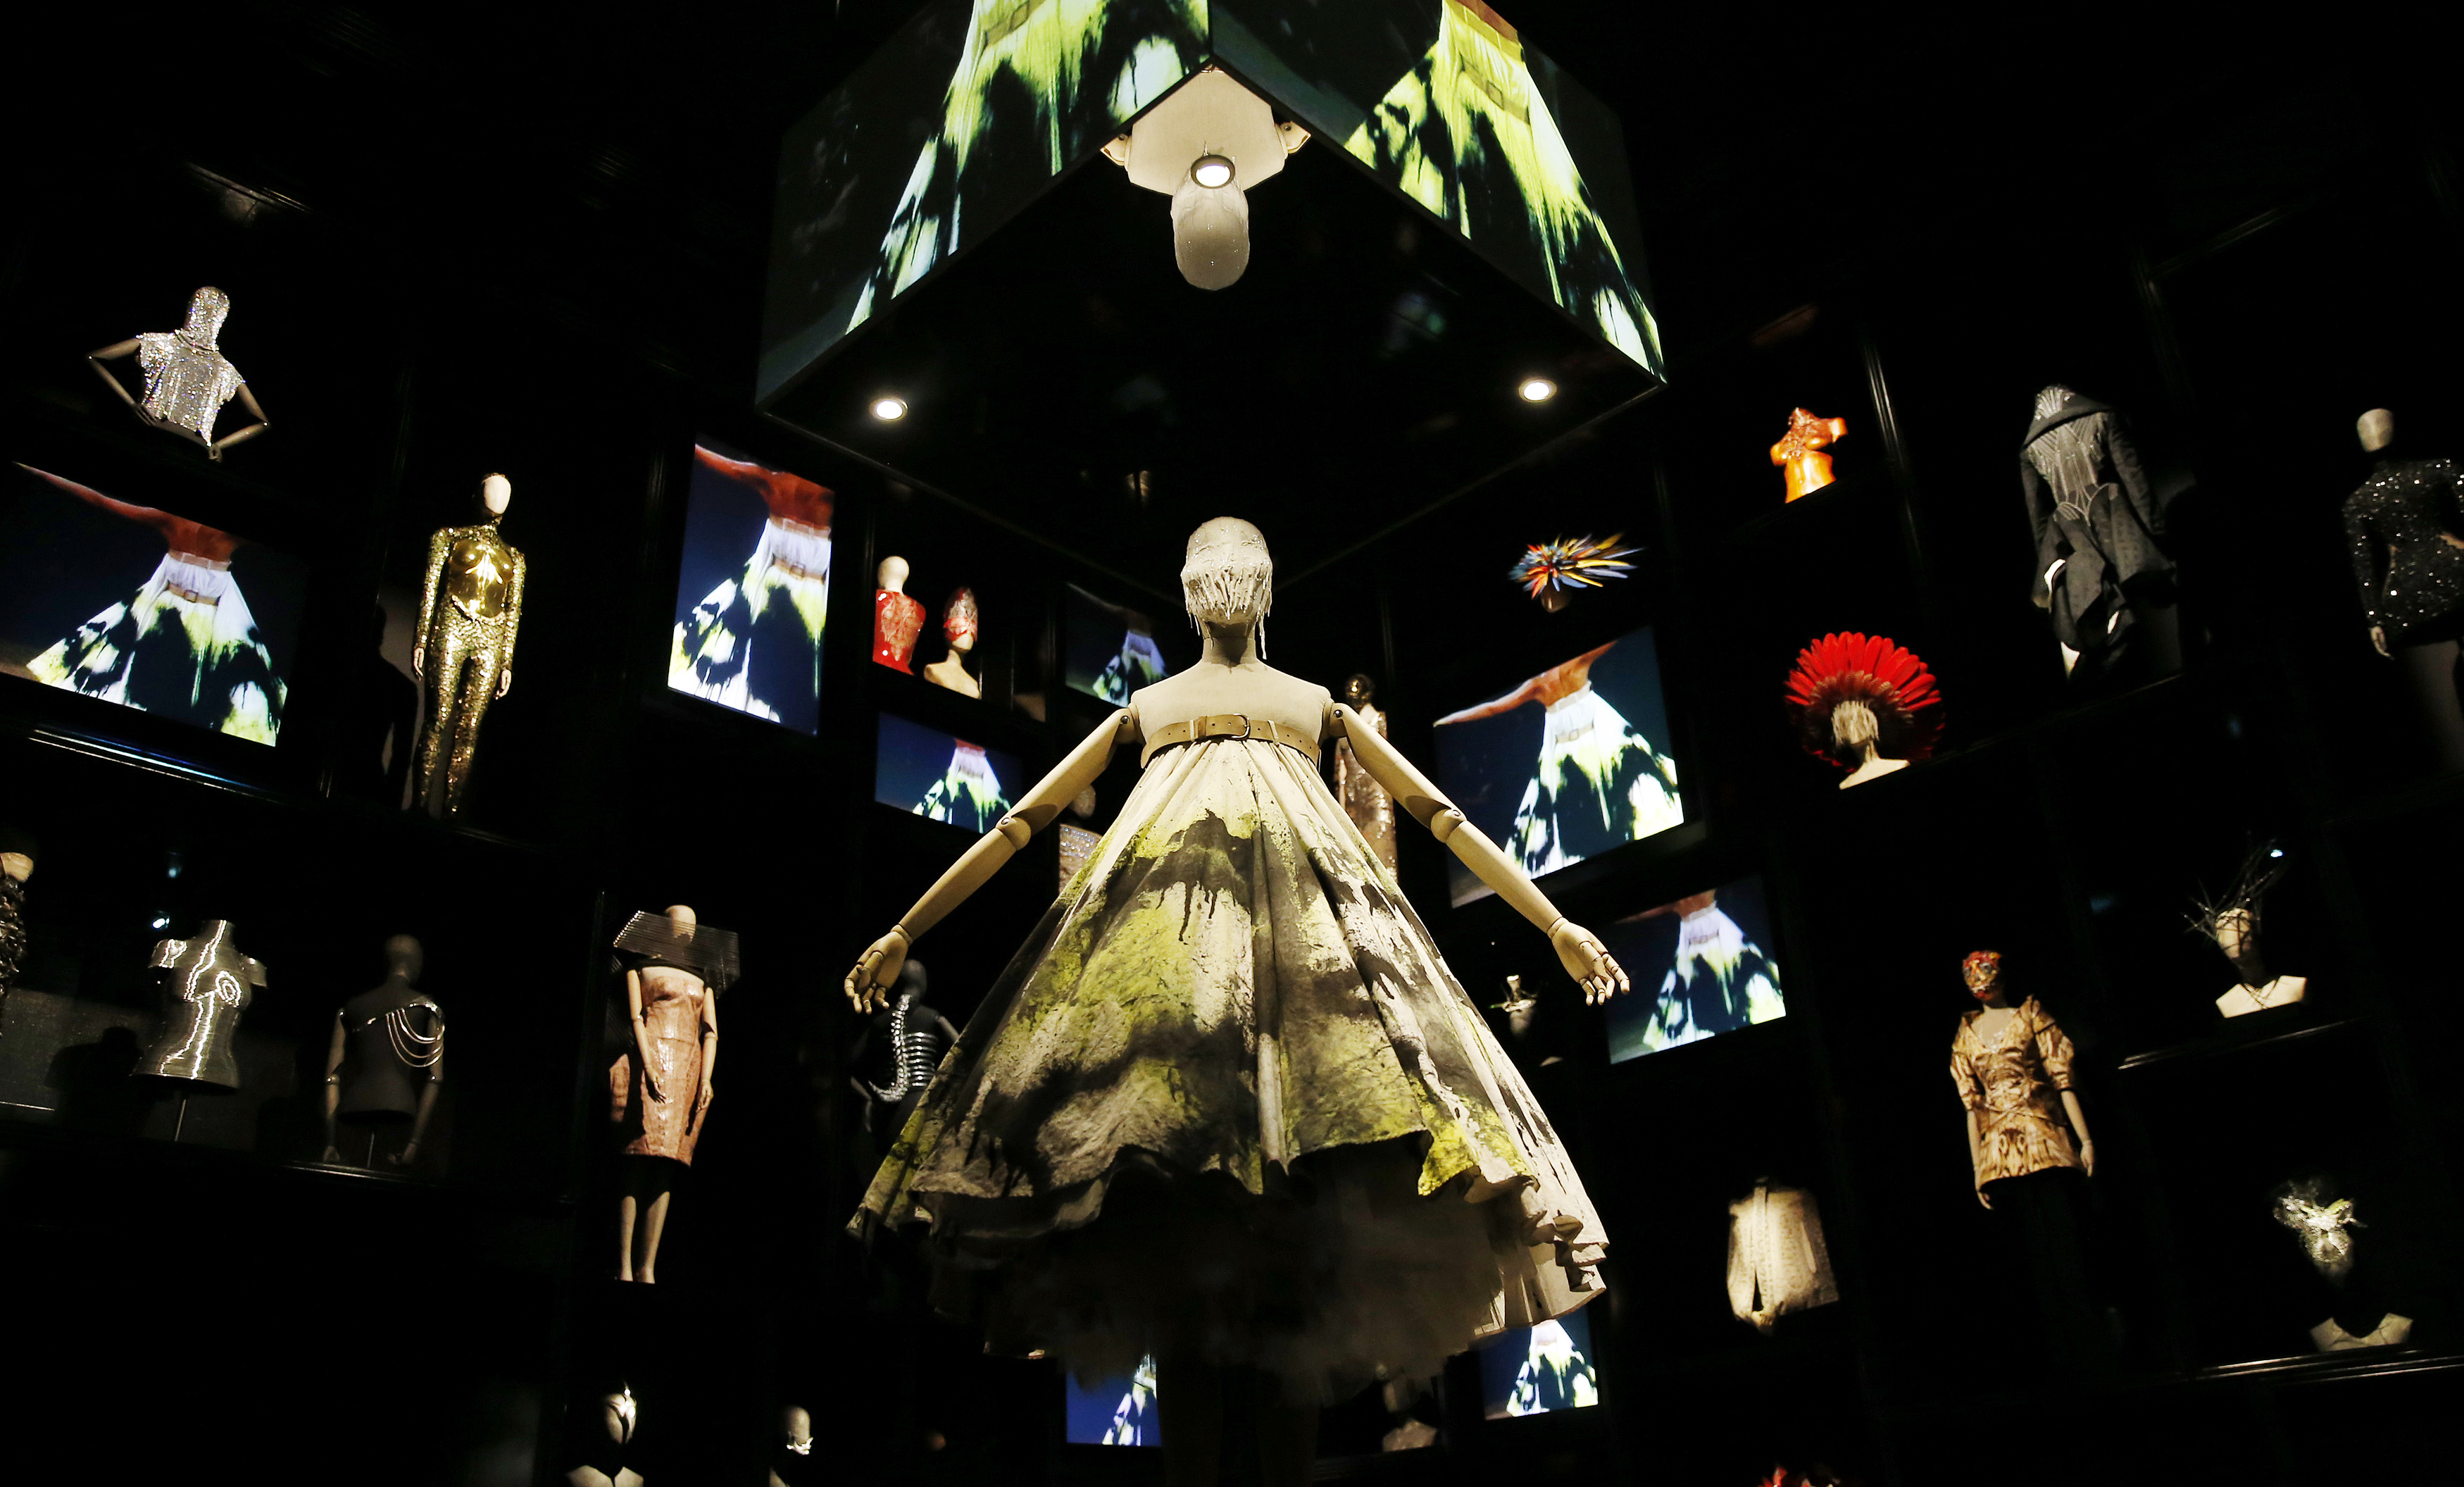 A dress which was created for the Alexander McQueen No. 13 1999 collection fashion show is displayed in the